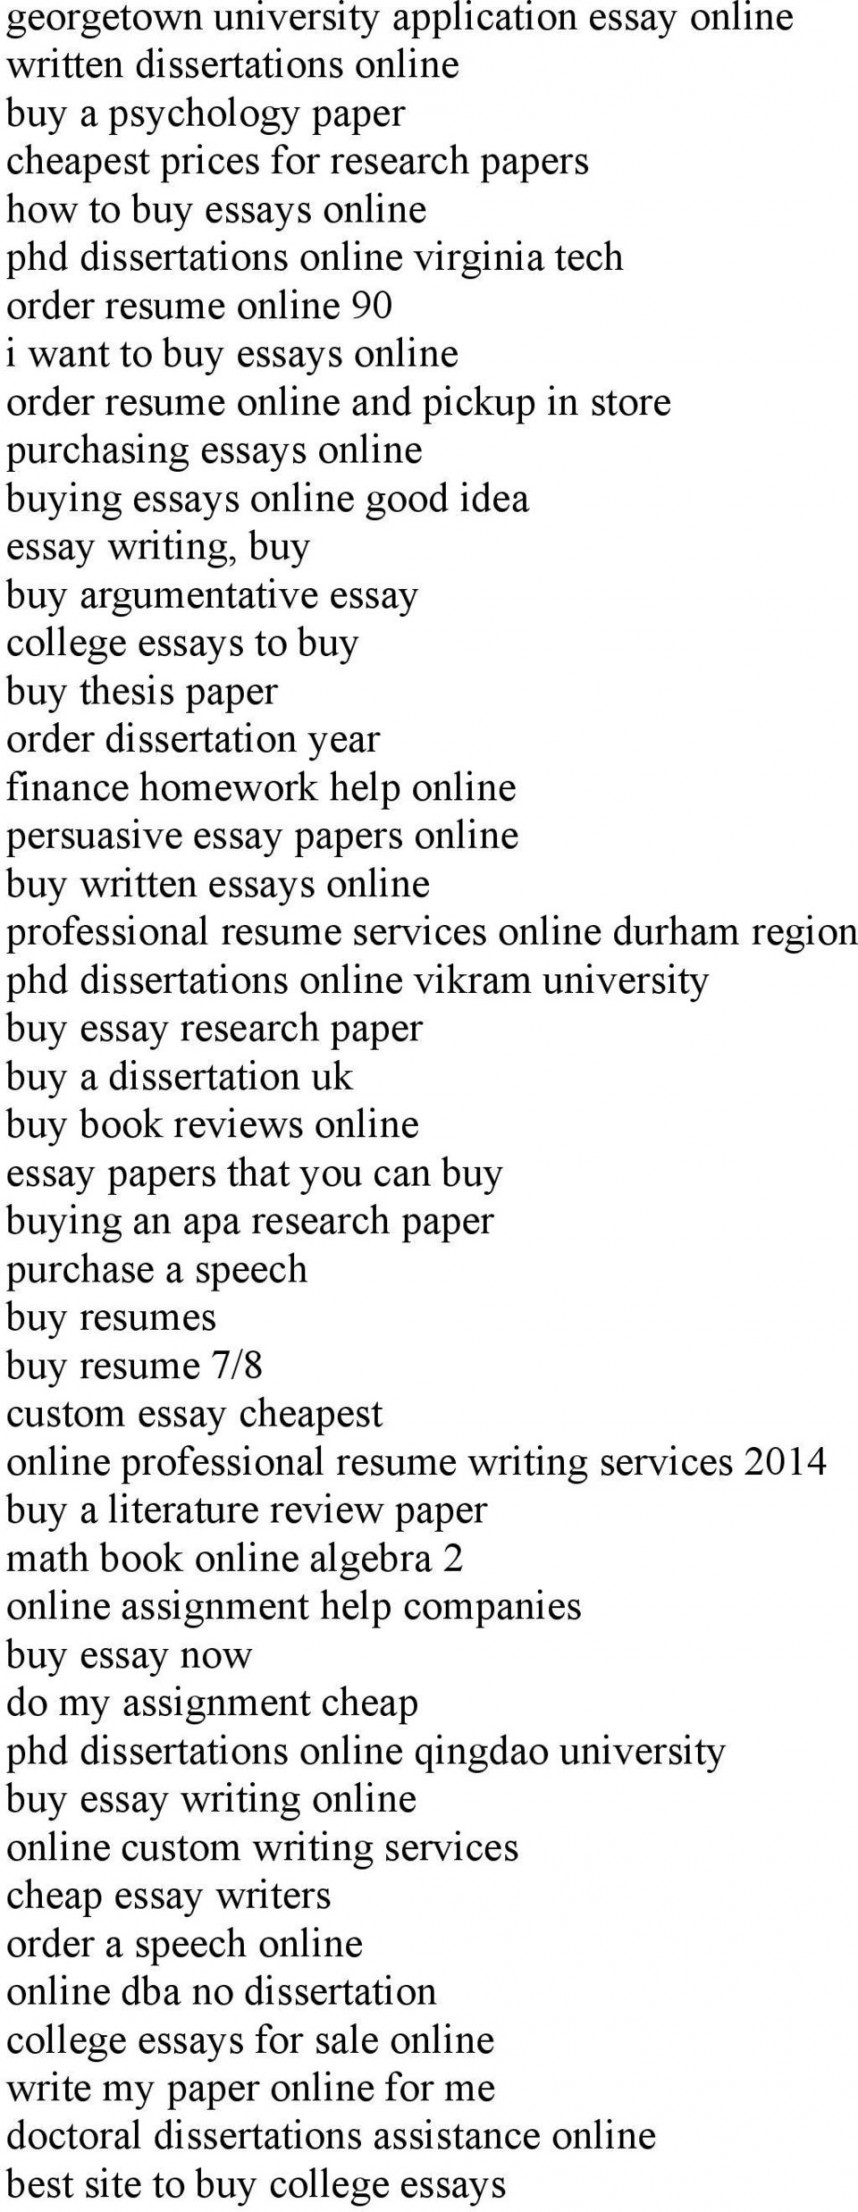 004 Research Paper Buying Page 4 Best A Behaviour Online Behavior Impulse Papers 868